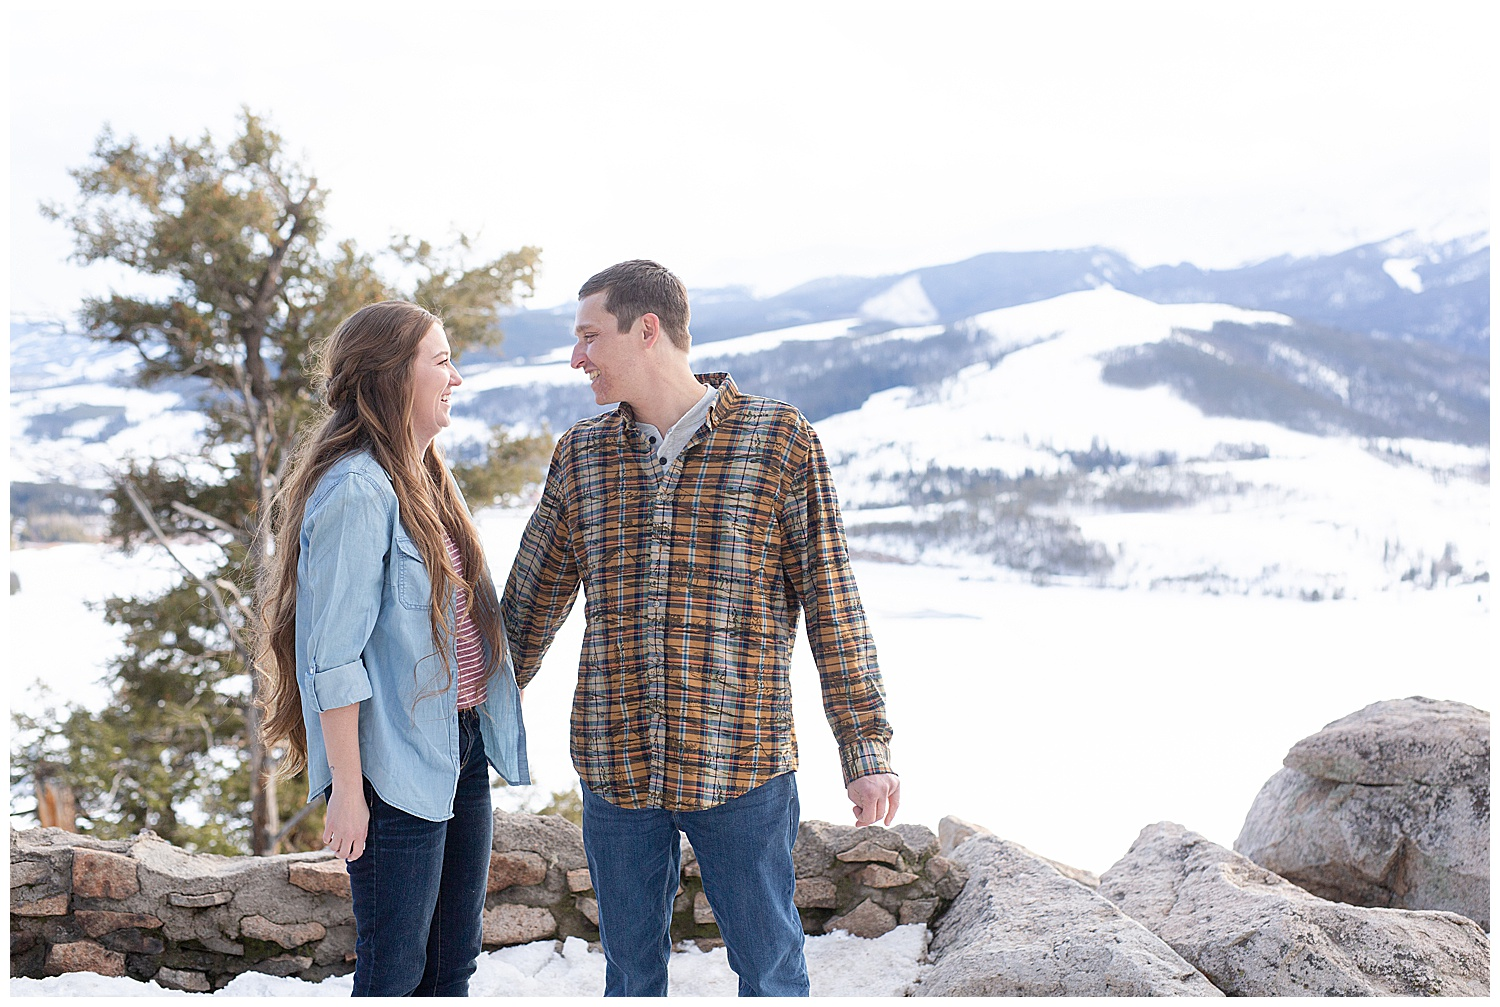 Winter-Breckenridge-Colorado-Engagement-Session_0005.jpg